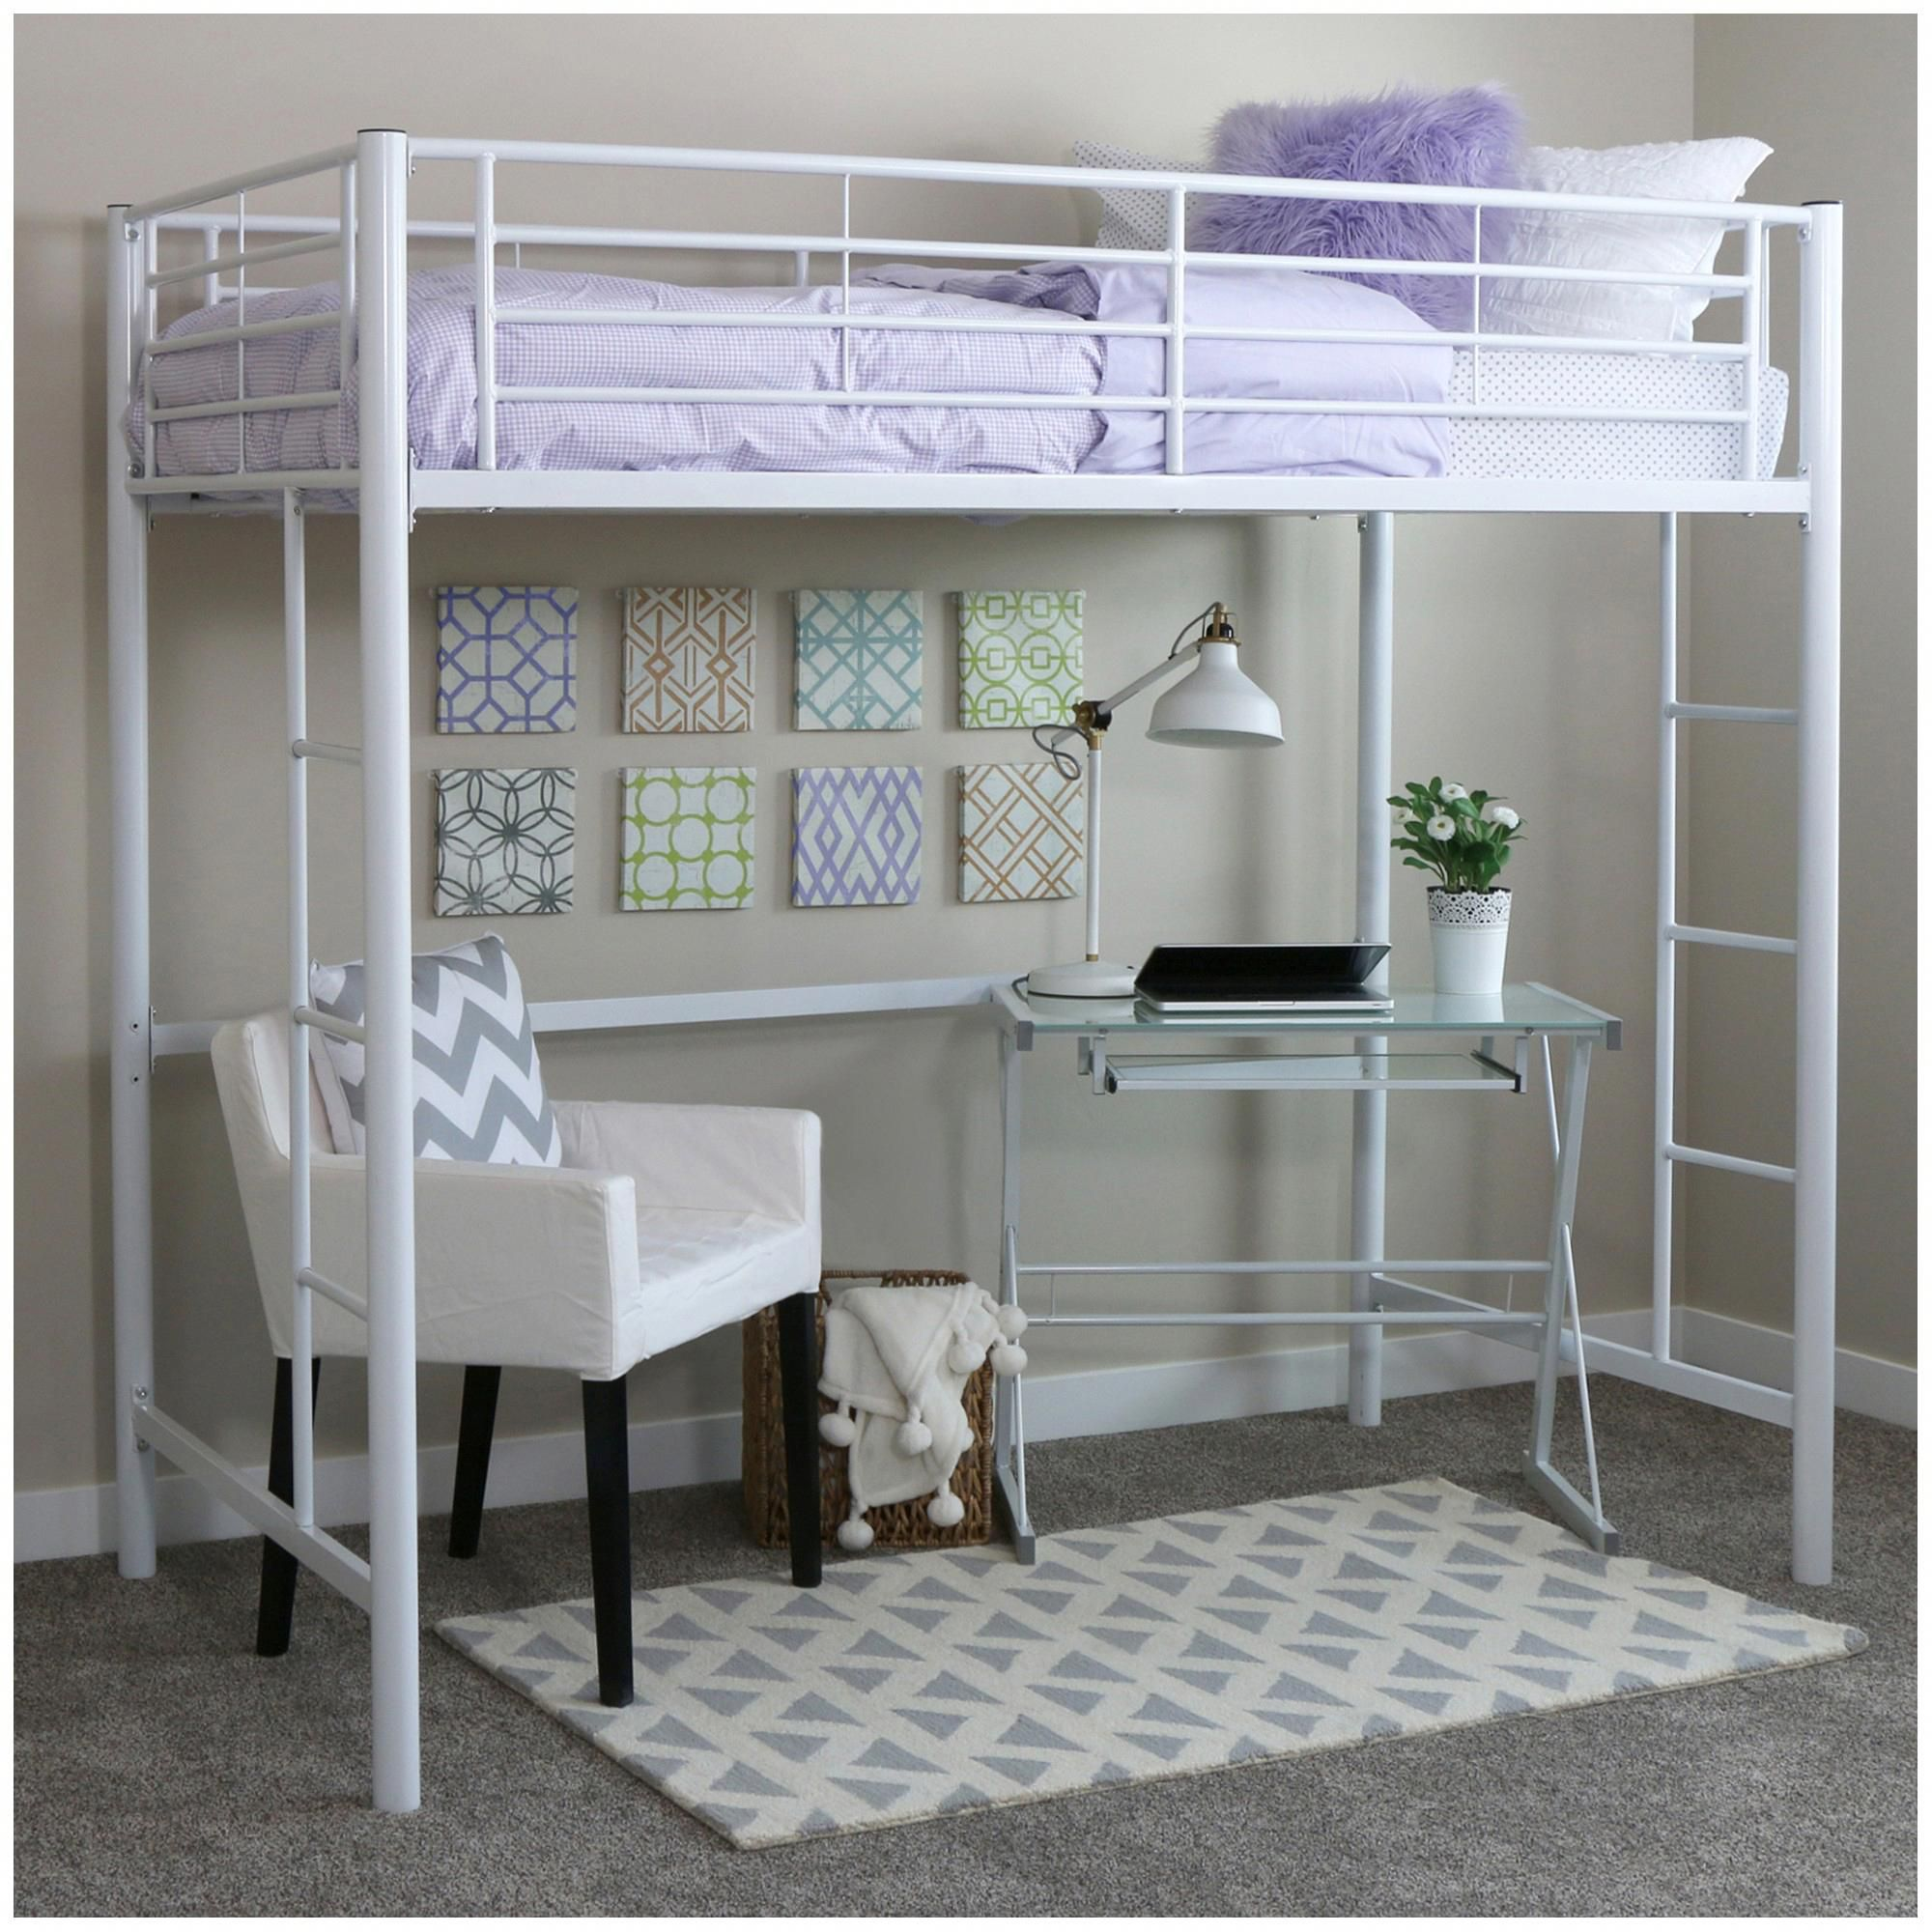 Bed Frame White Walker Edison Bunkbedideasfors Bunk Beds Loft